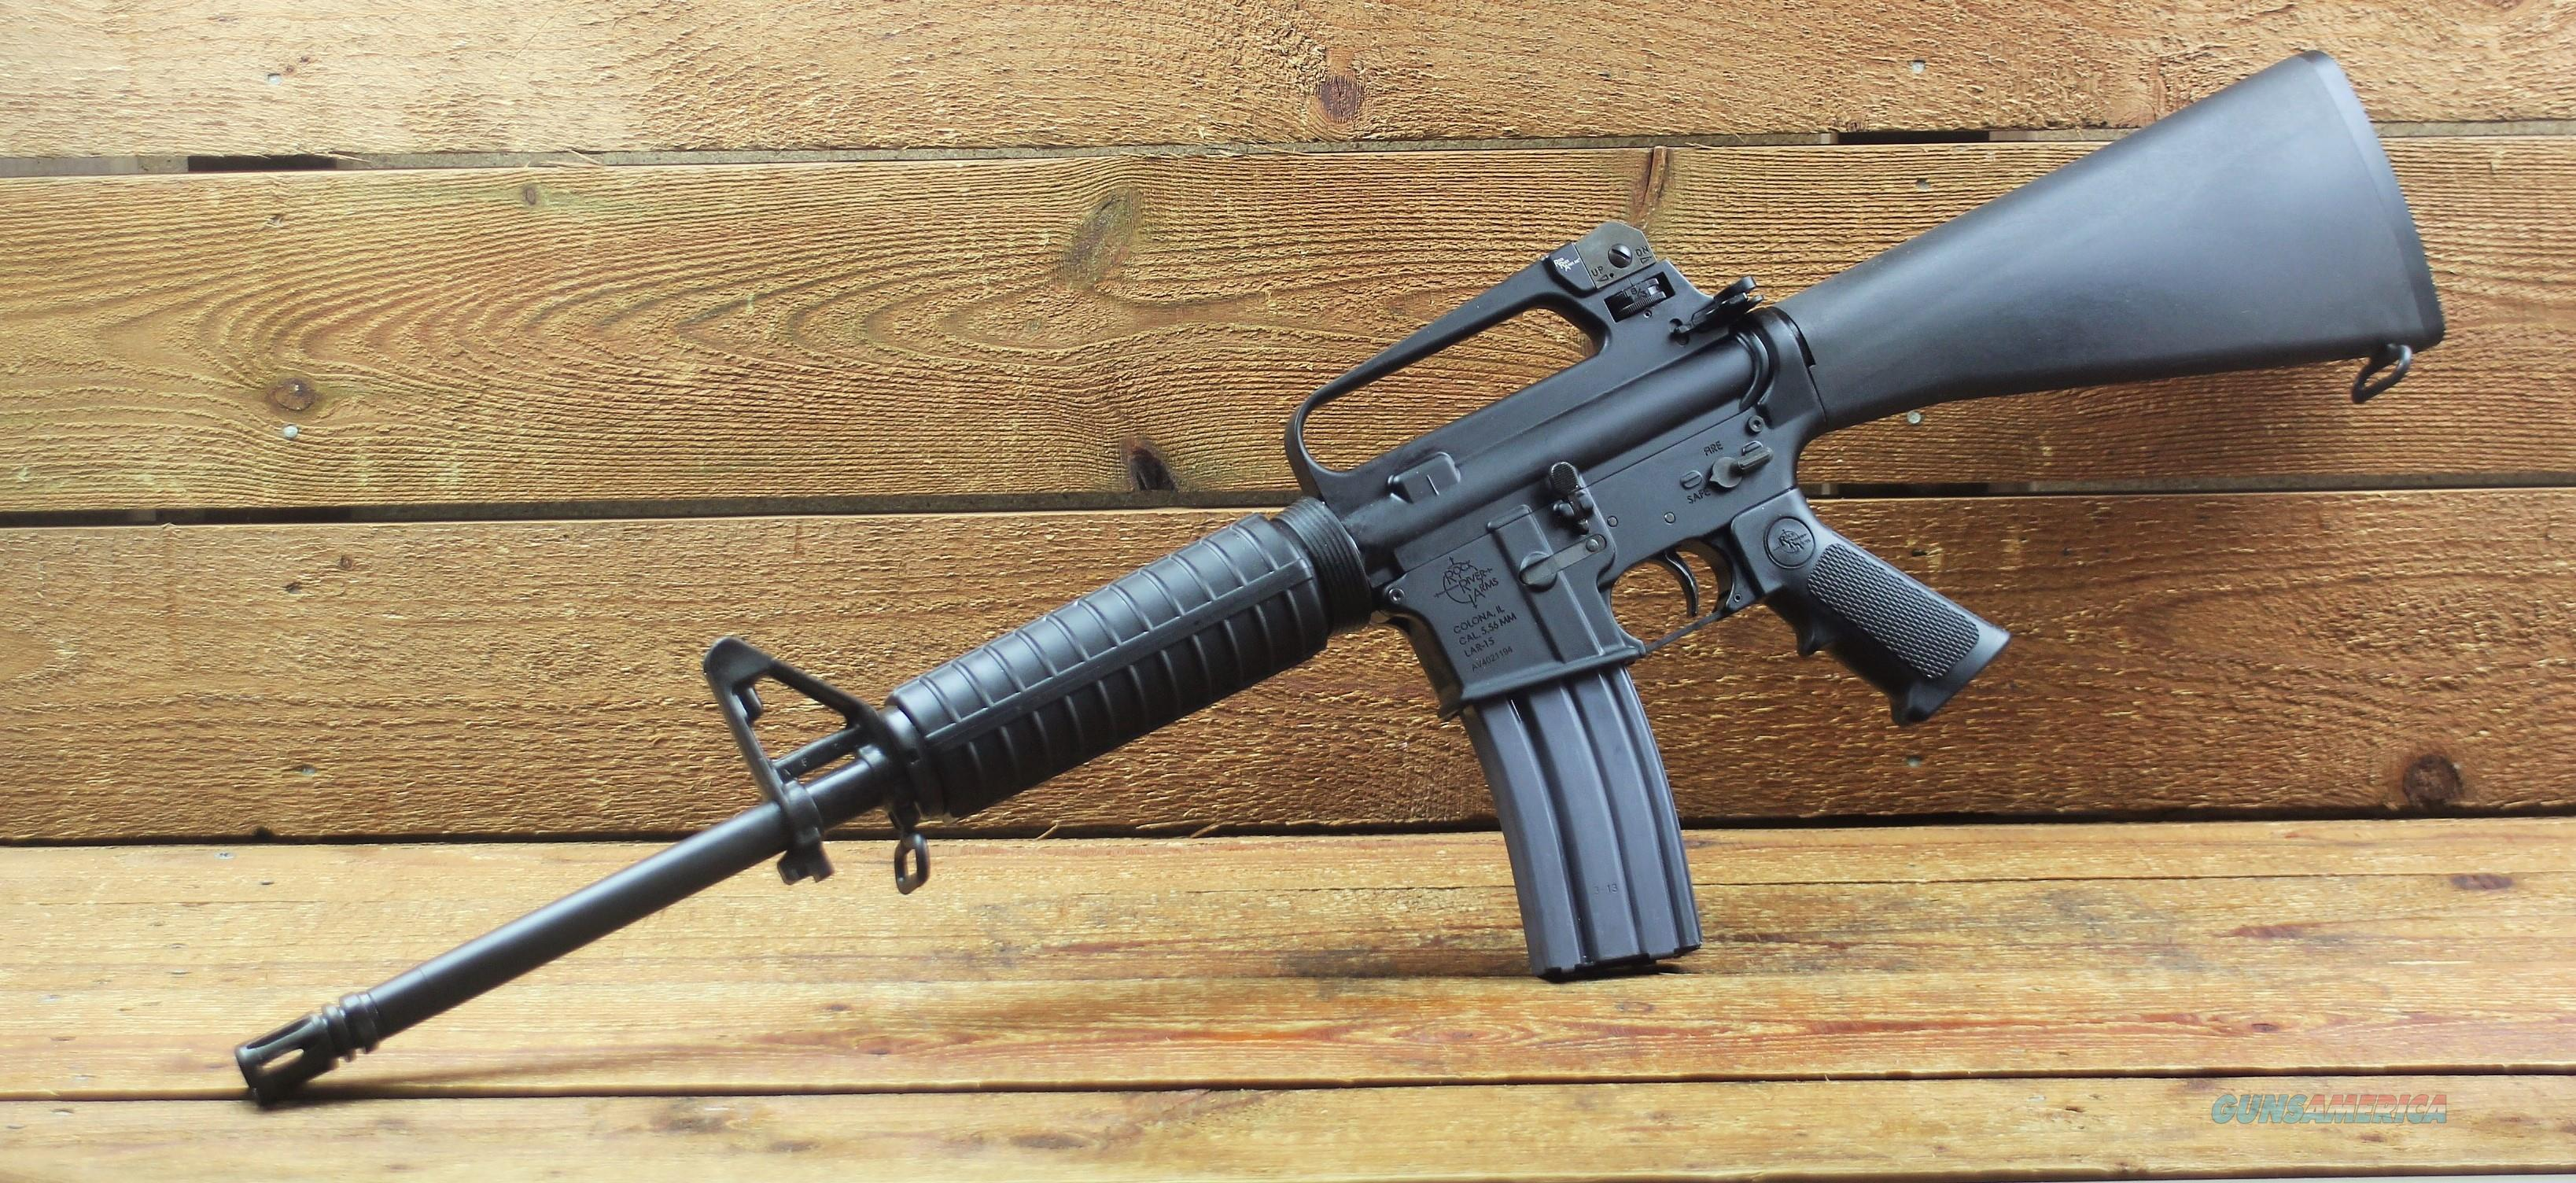 (SALE) easy pay monthly $79 Rock River Arms Deal ar-15   RRAAR1293 Fixed stock received contract's for federal agencies AR15 Lar-15 5.56 nato   Guns > Rifles > Rock River Arms Rifles